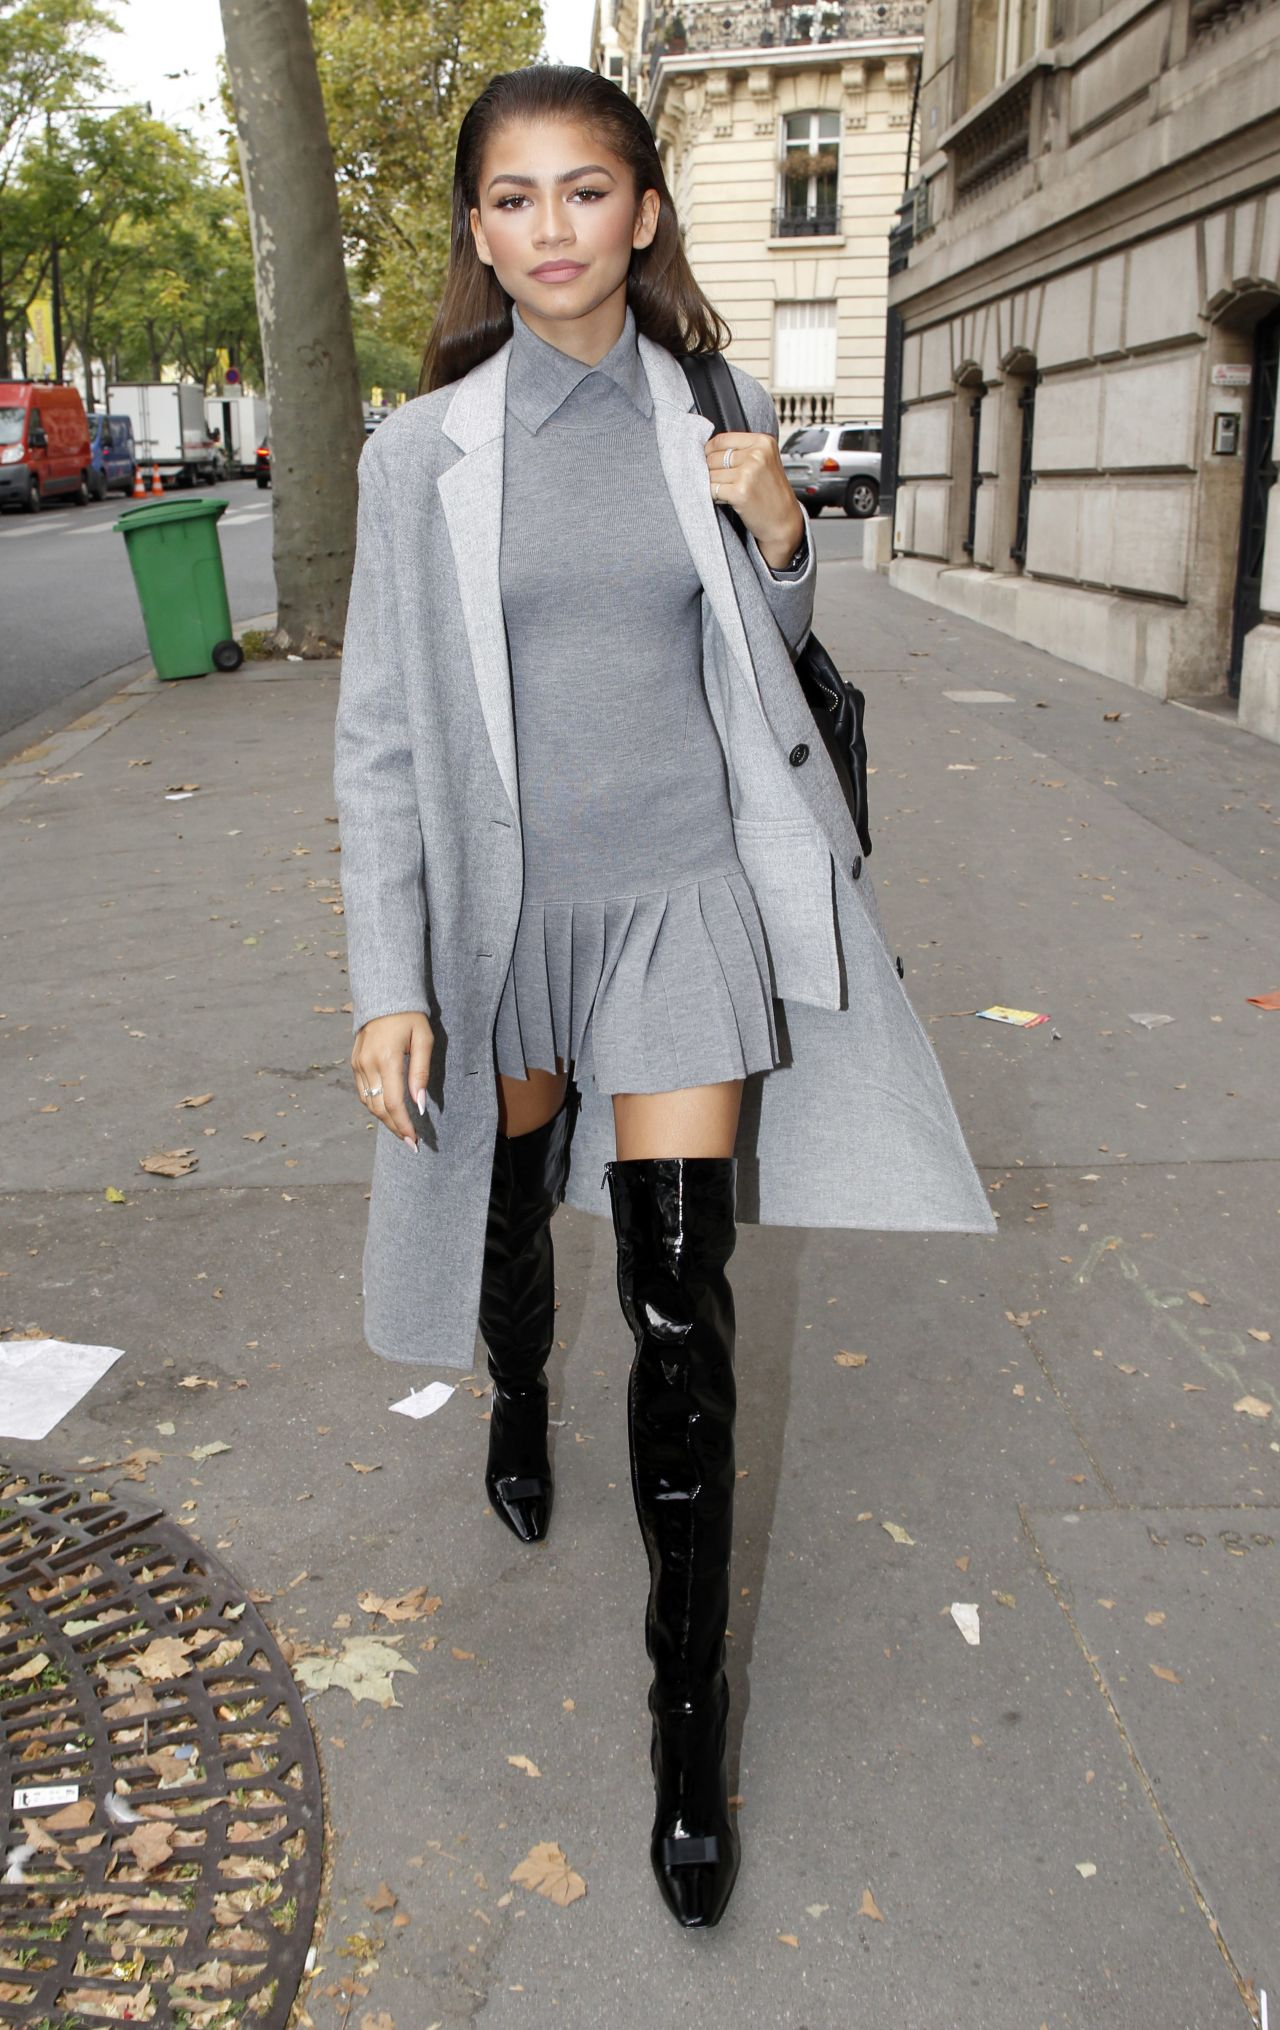 zendaya-street-fashion-out-in-paris-october-2015_7